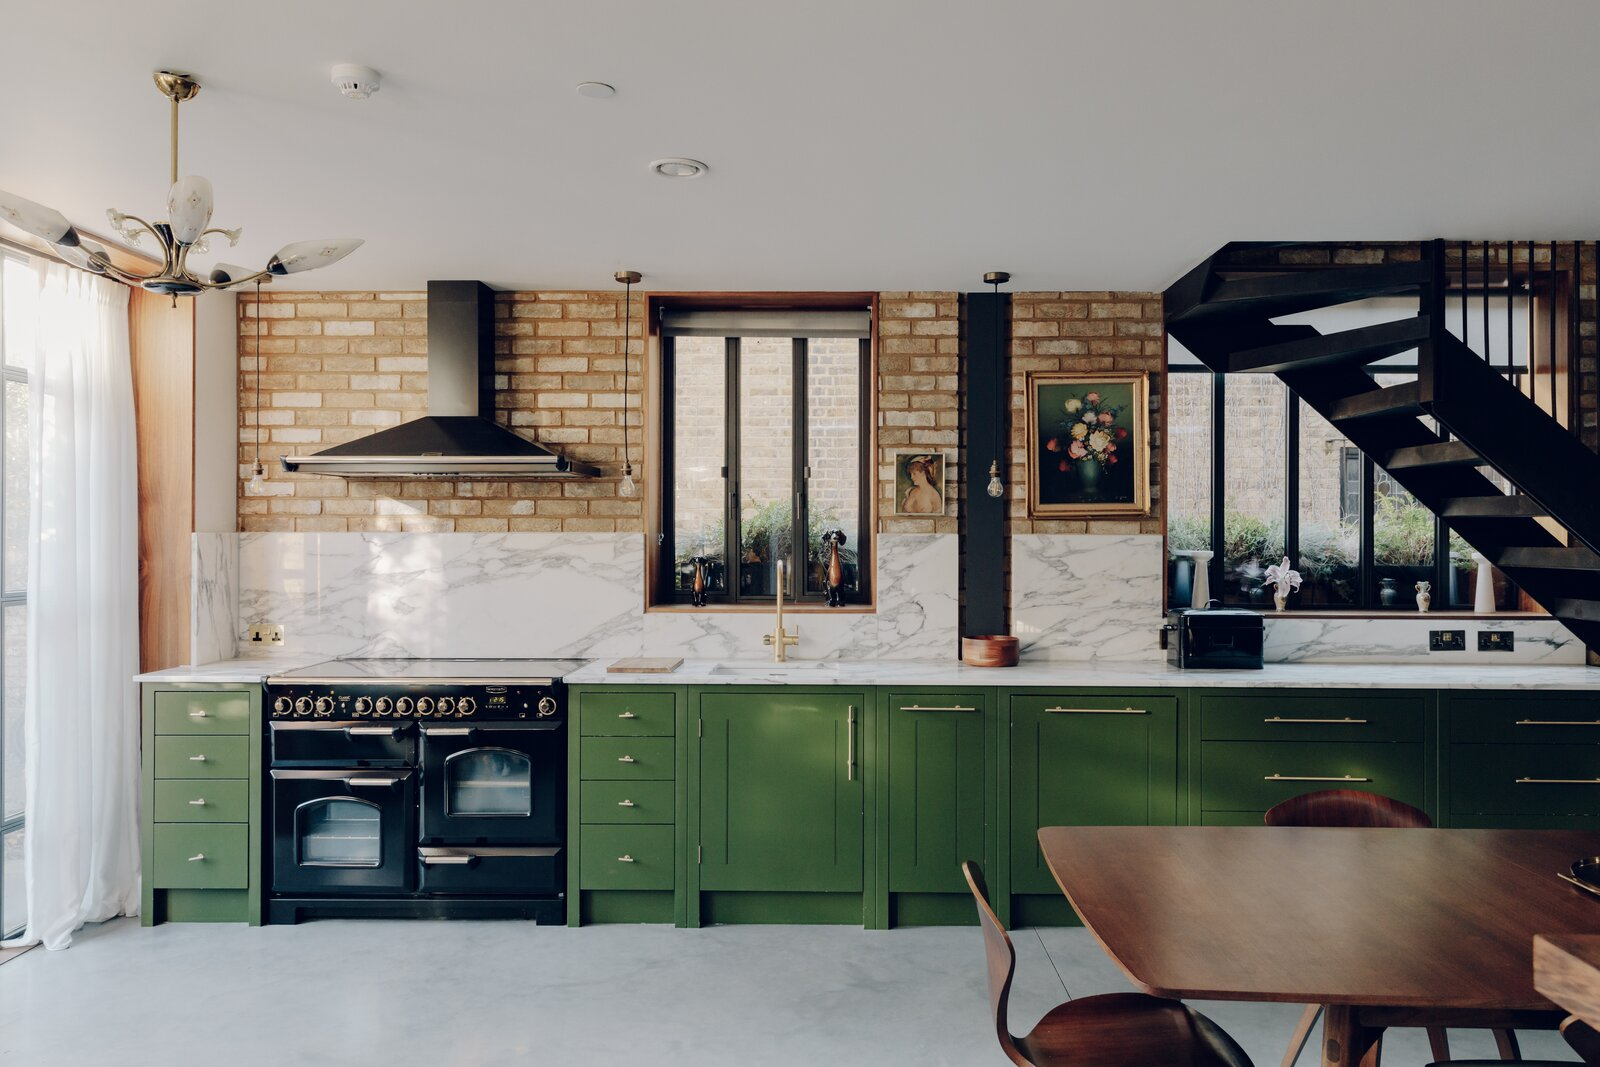 The bespoke kitchen by Plain English pairs olive green cabinetry with a marble countertop and backsplash. The exposed brick wall and concrete floor lend an edge to the material mix.  Photo 3 of 13 in An Enchanting, Reimagined Coach House in London Asks £2M